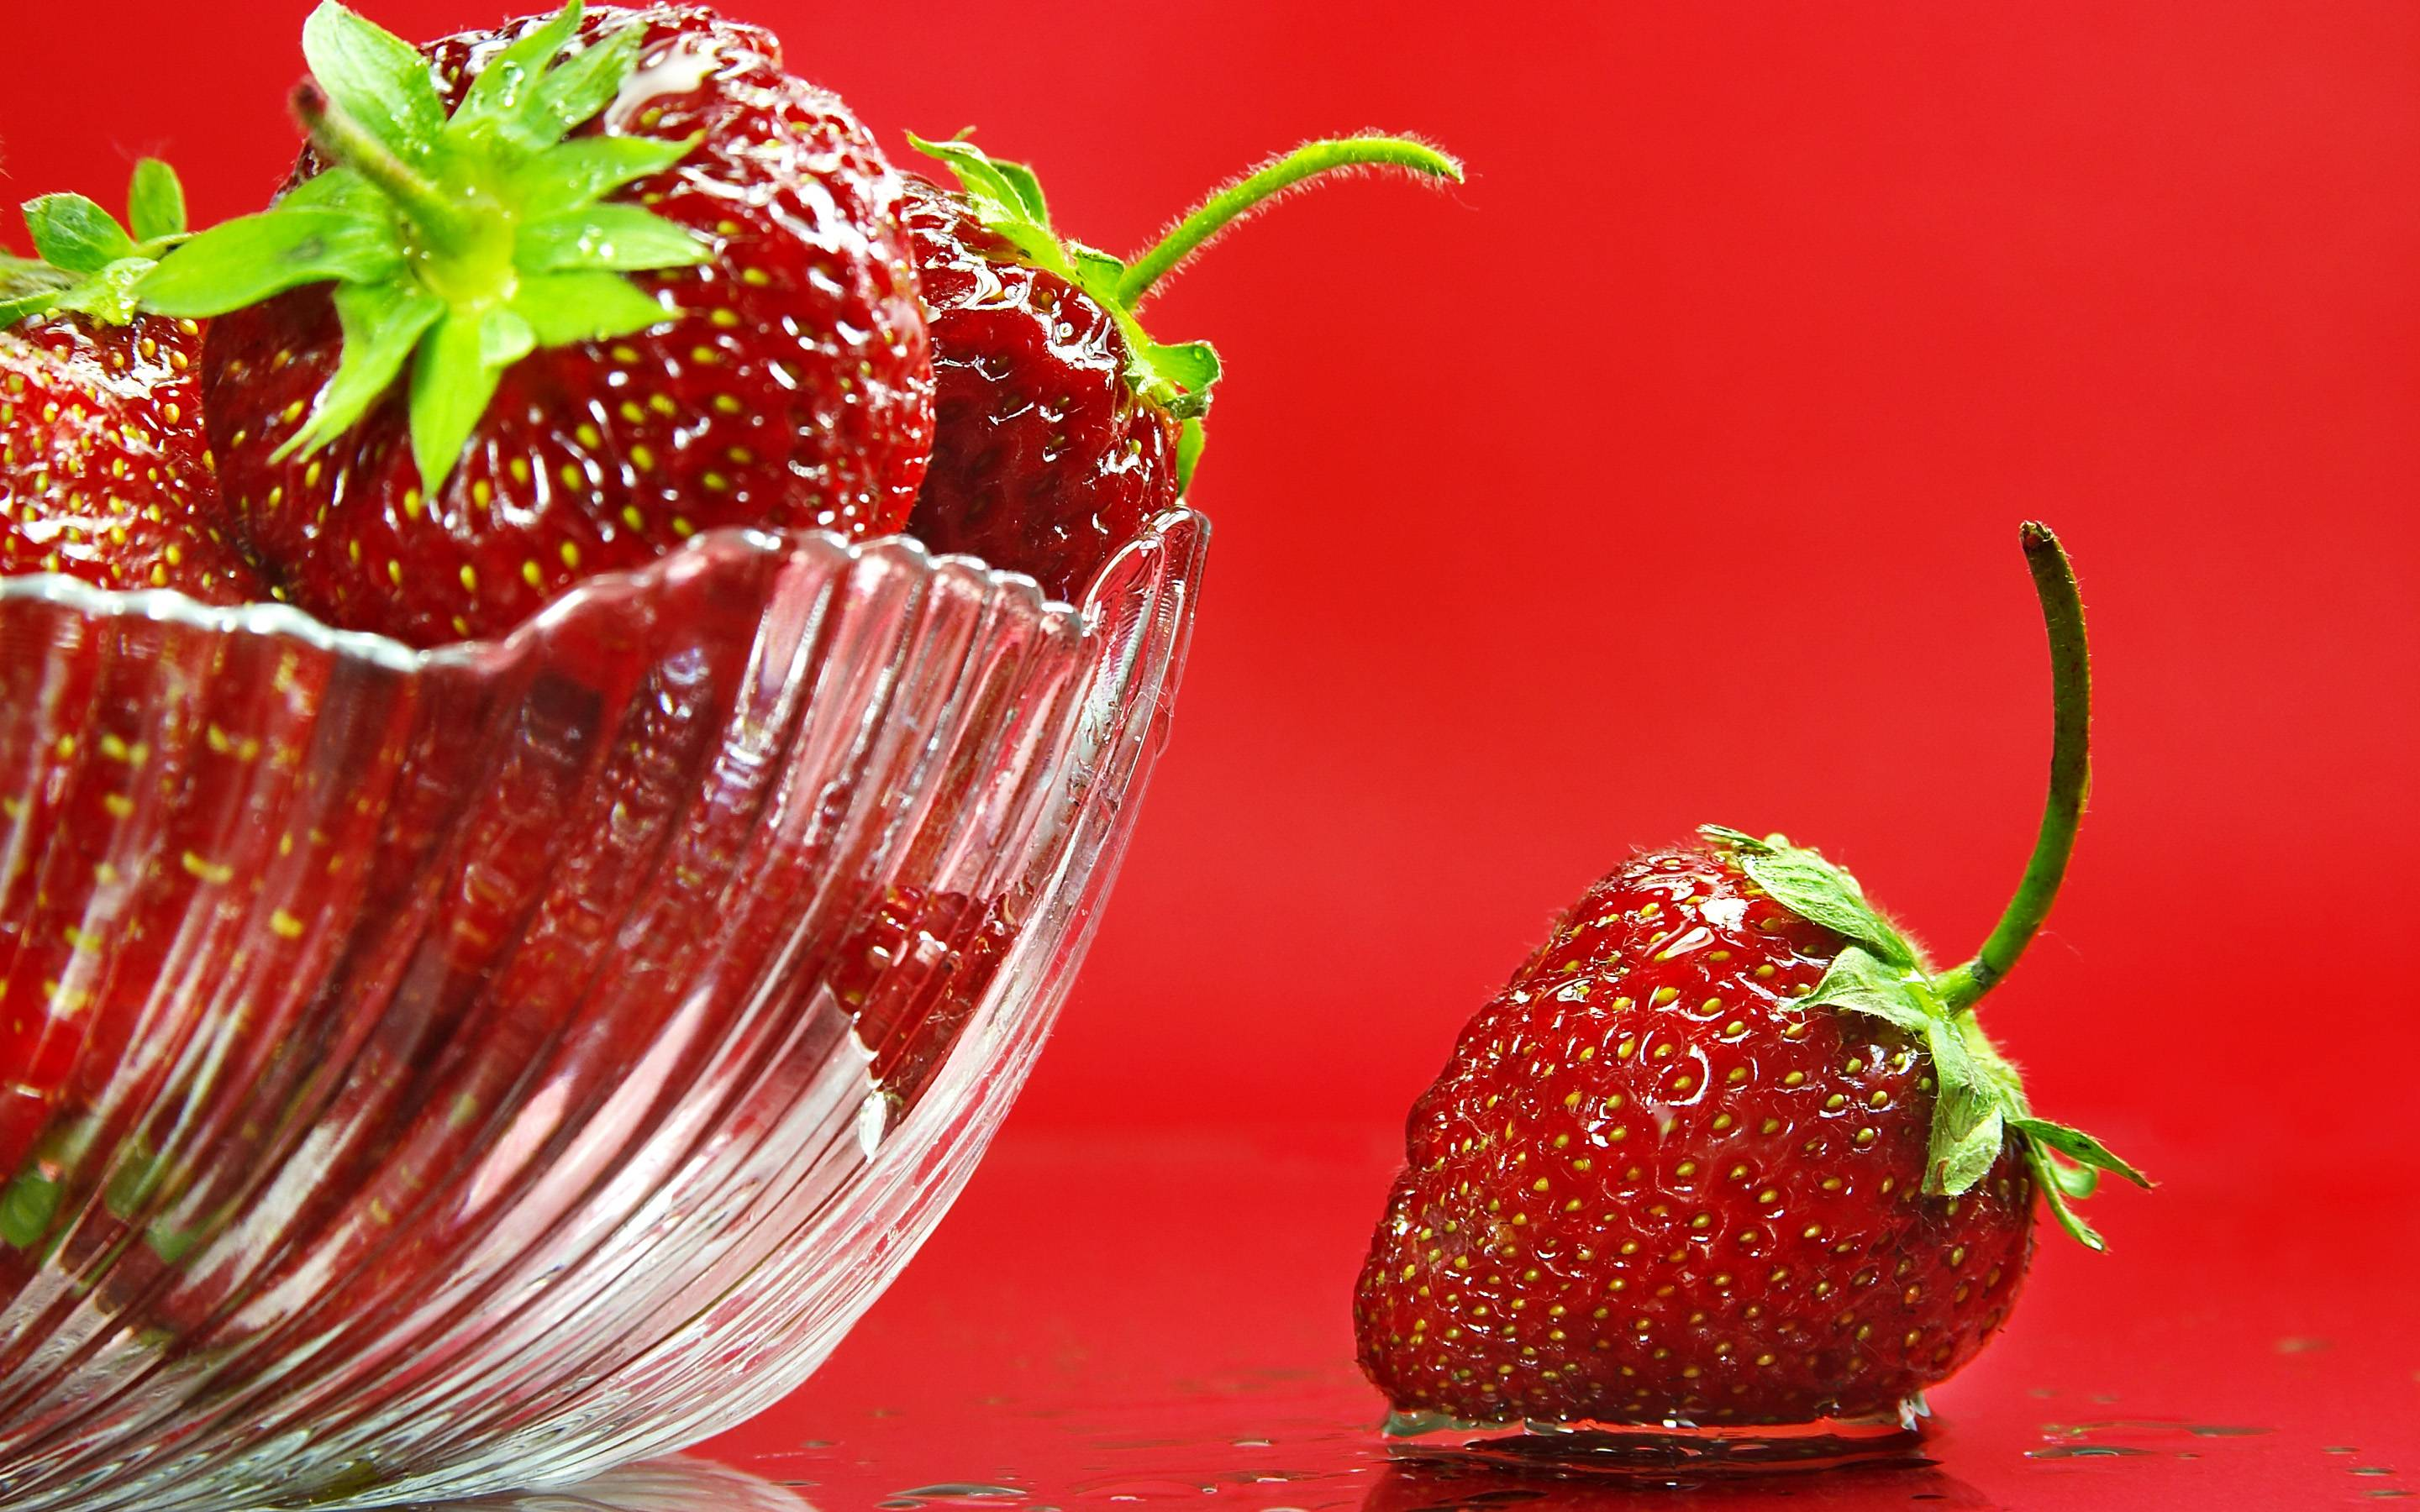 Strawberry Wallpapers - Wallpaper Cave